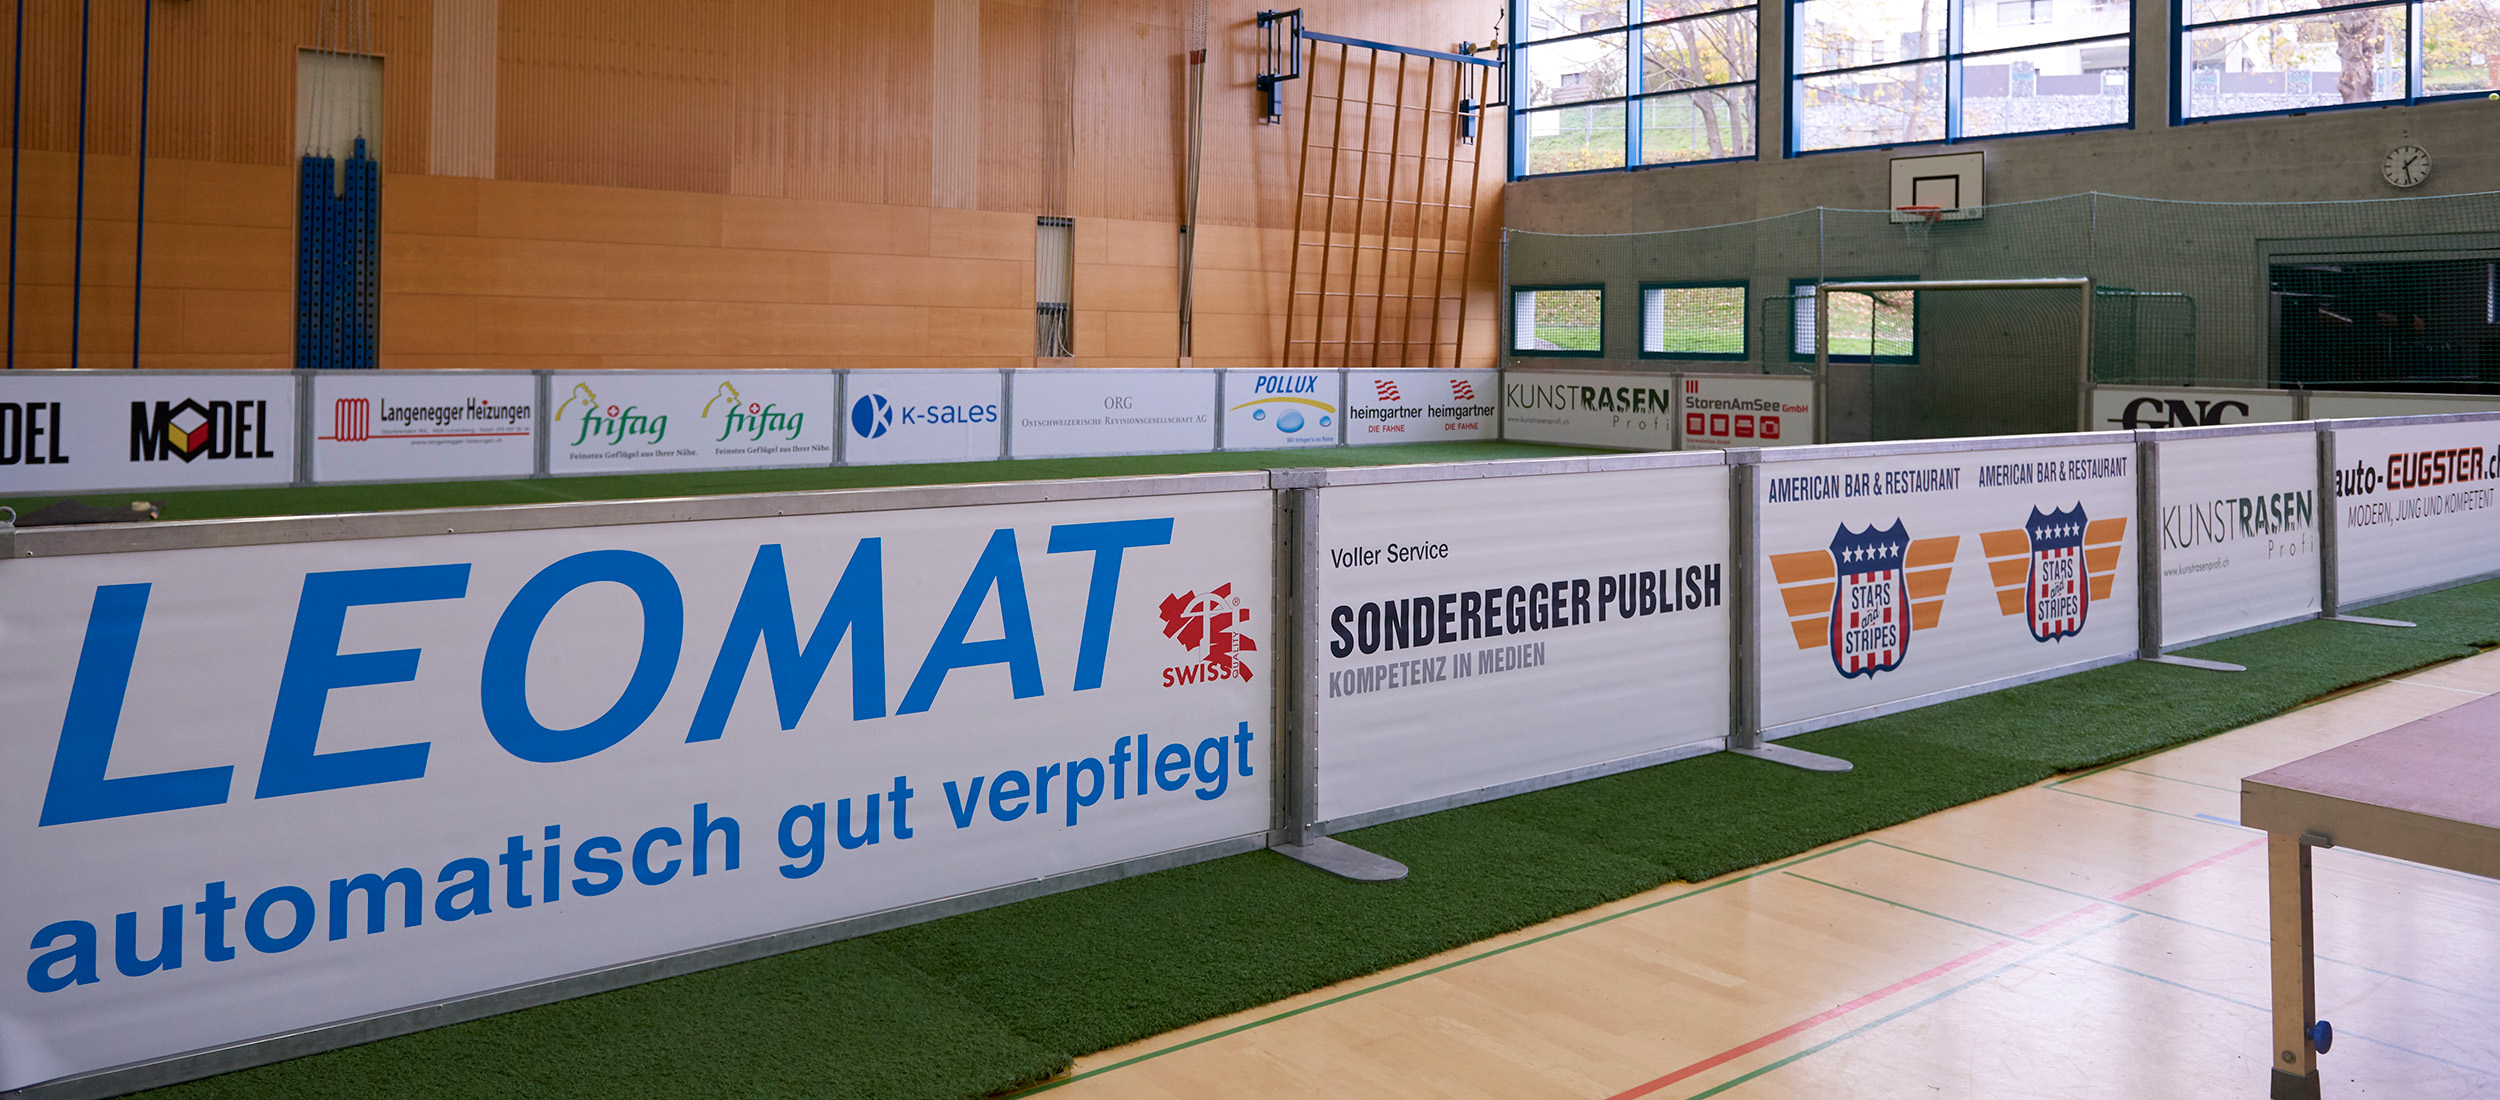 Bodensee-Cup_20171110_143536.jpg